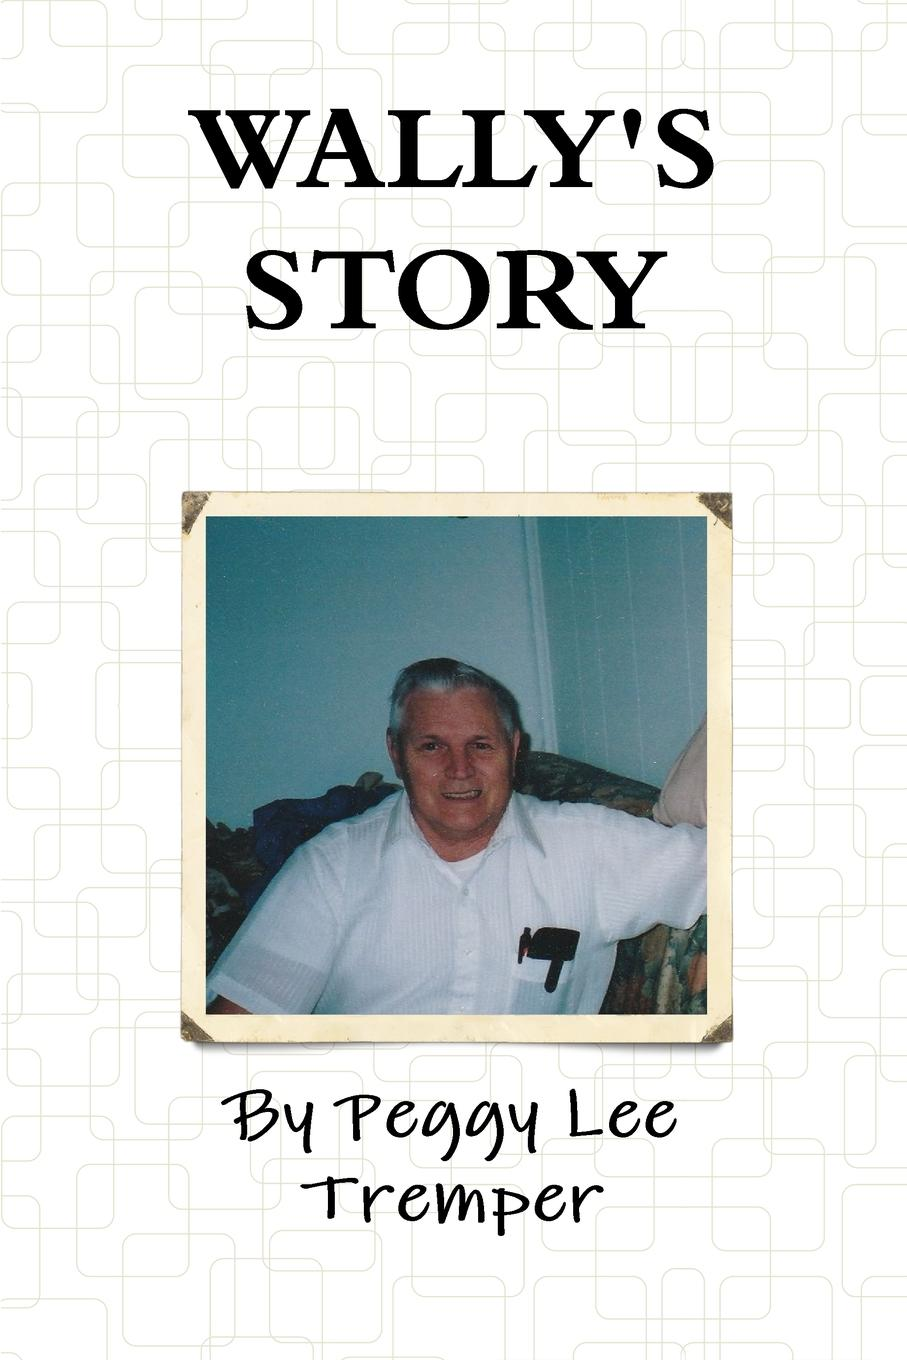 Peggy Lee Tremper WALLY.S STORY peggy lee tremper journey of hope